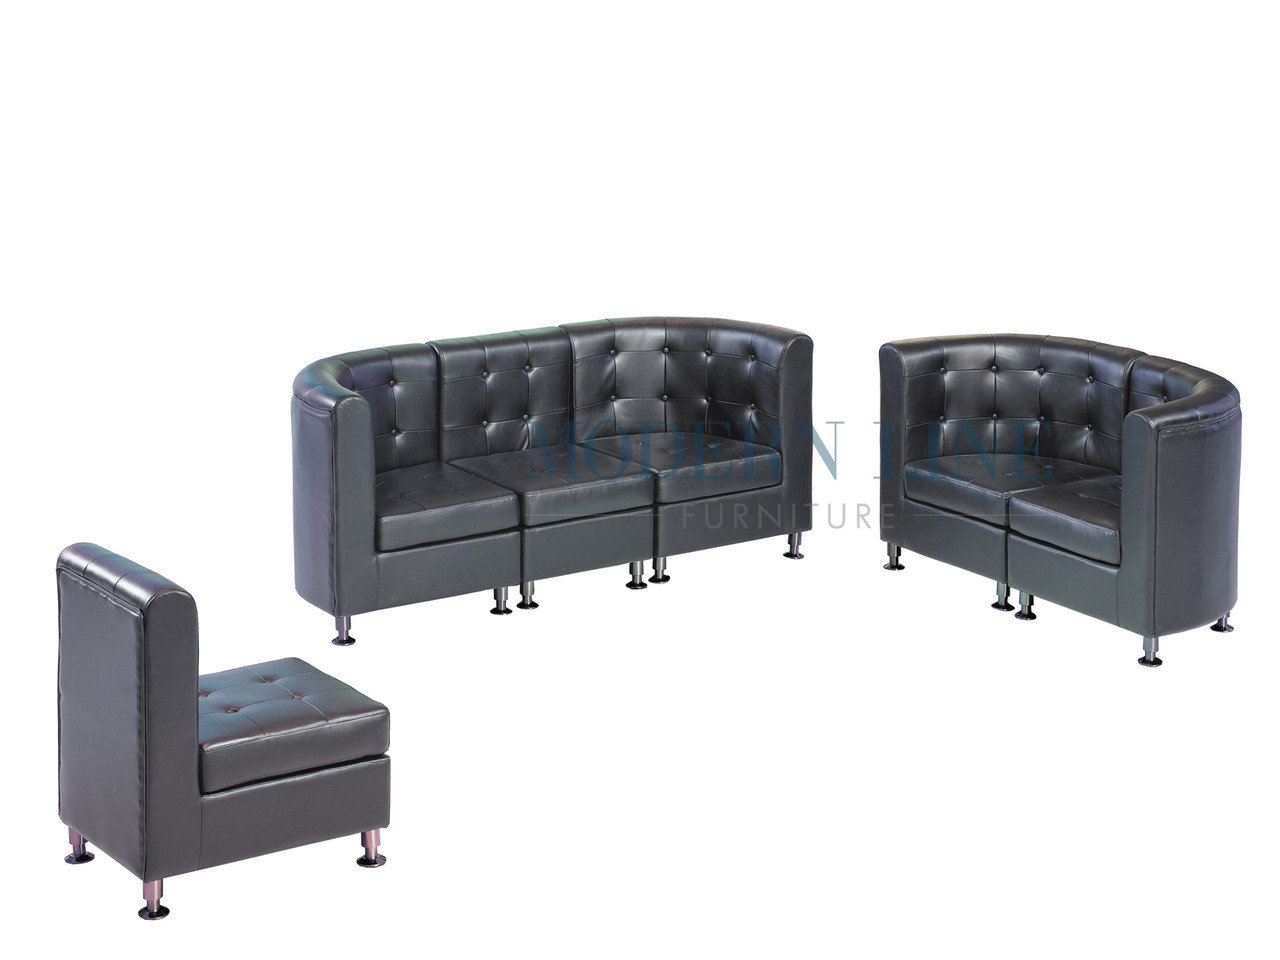 9077 modular furniture sofa loveseat and armless chair made in usa